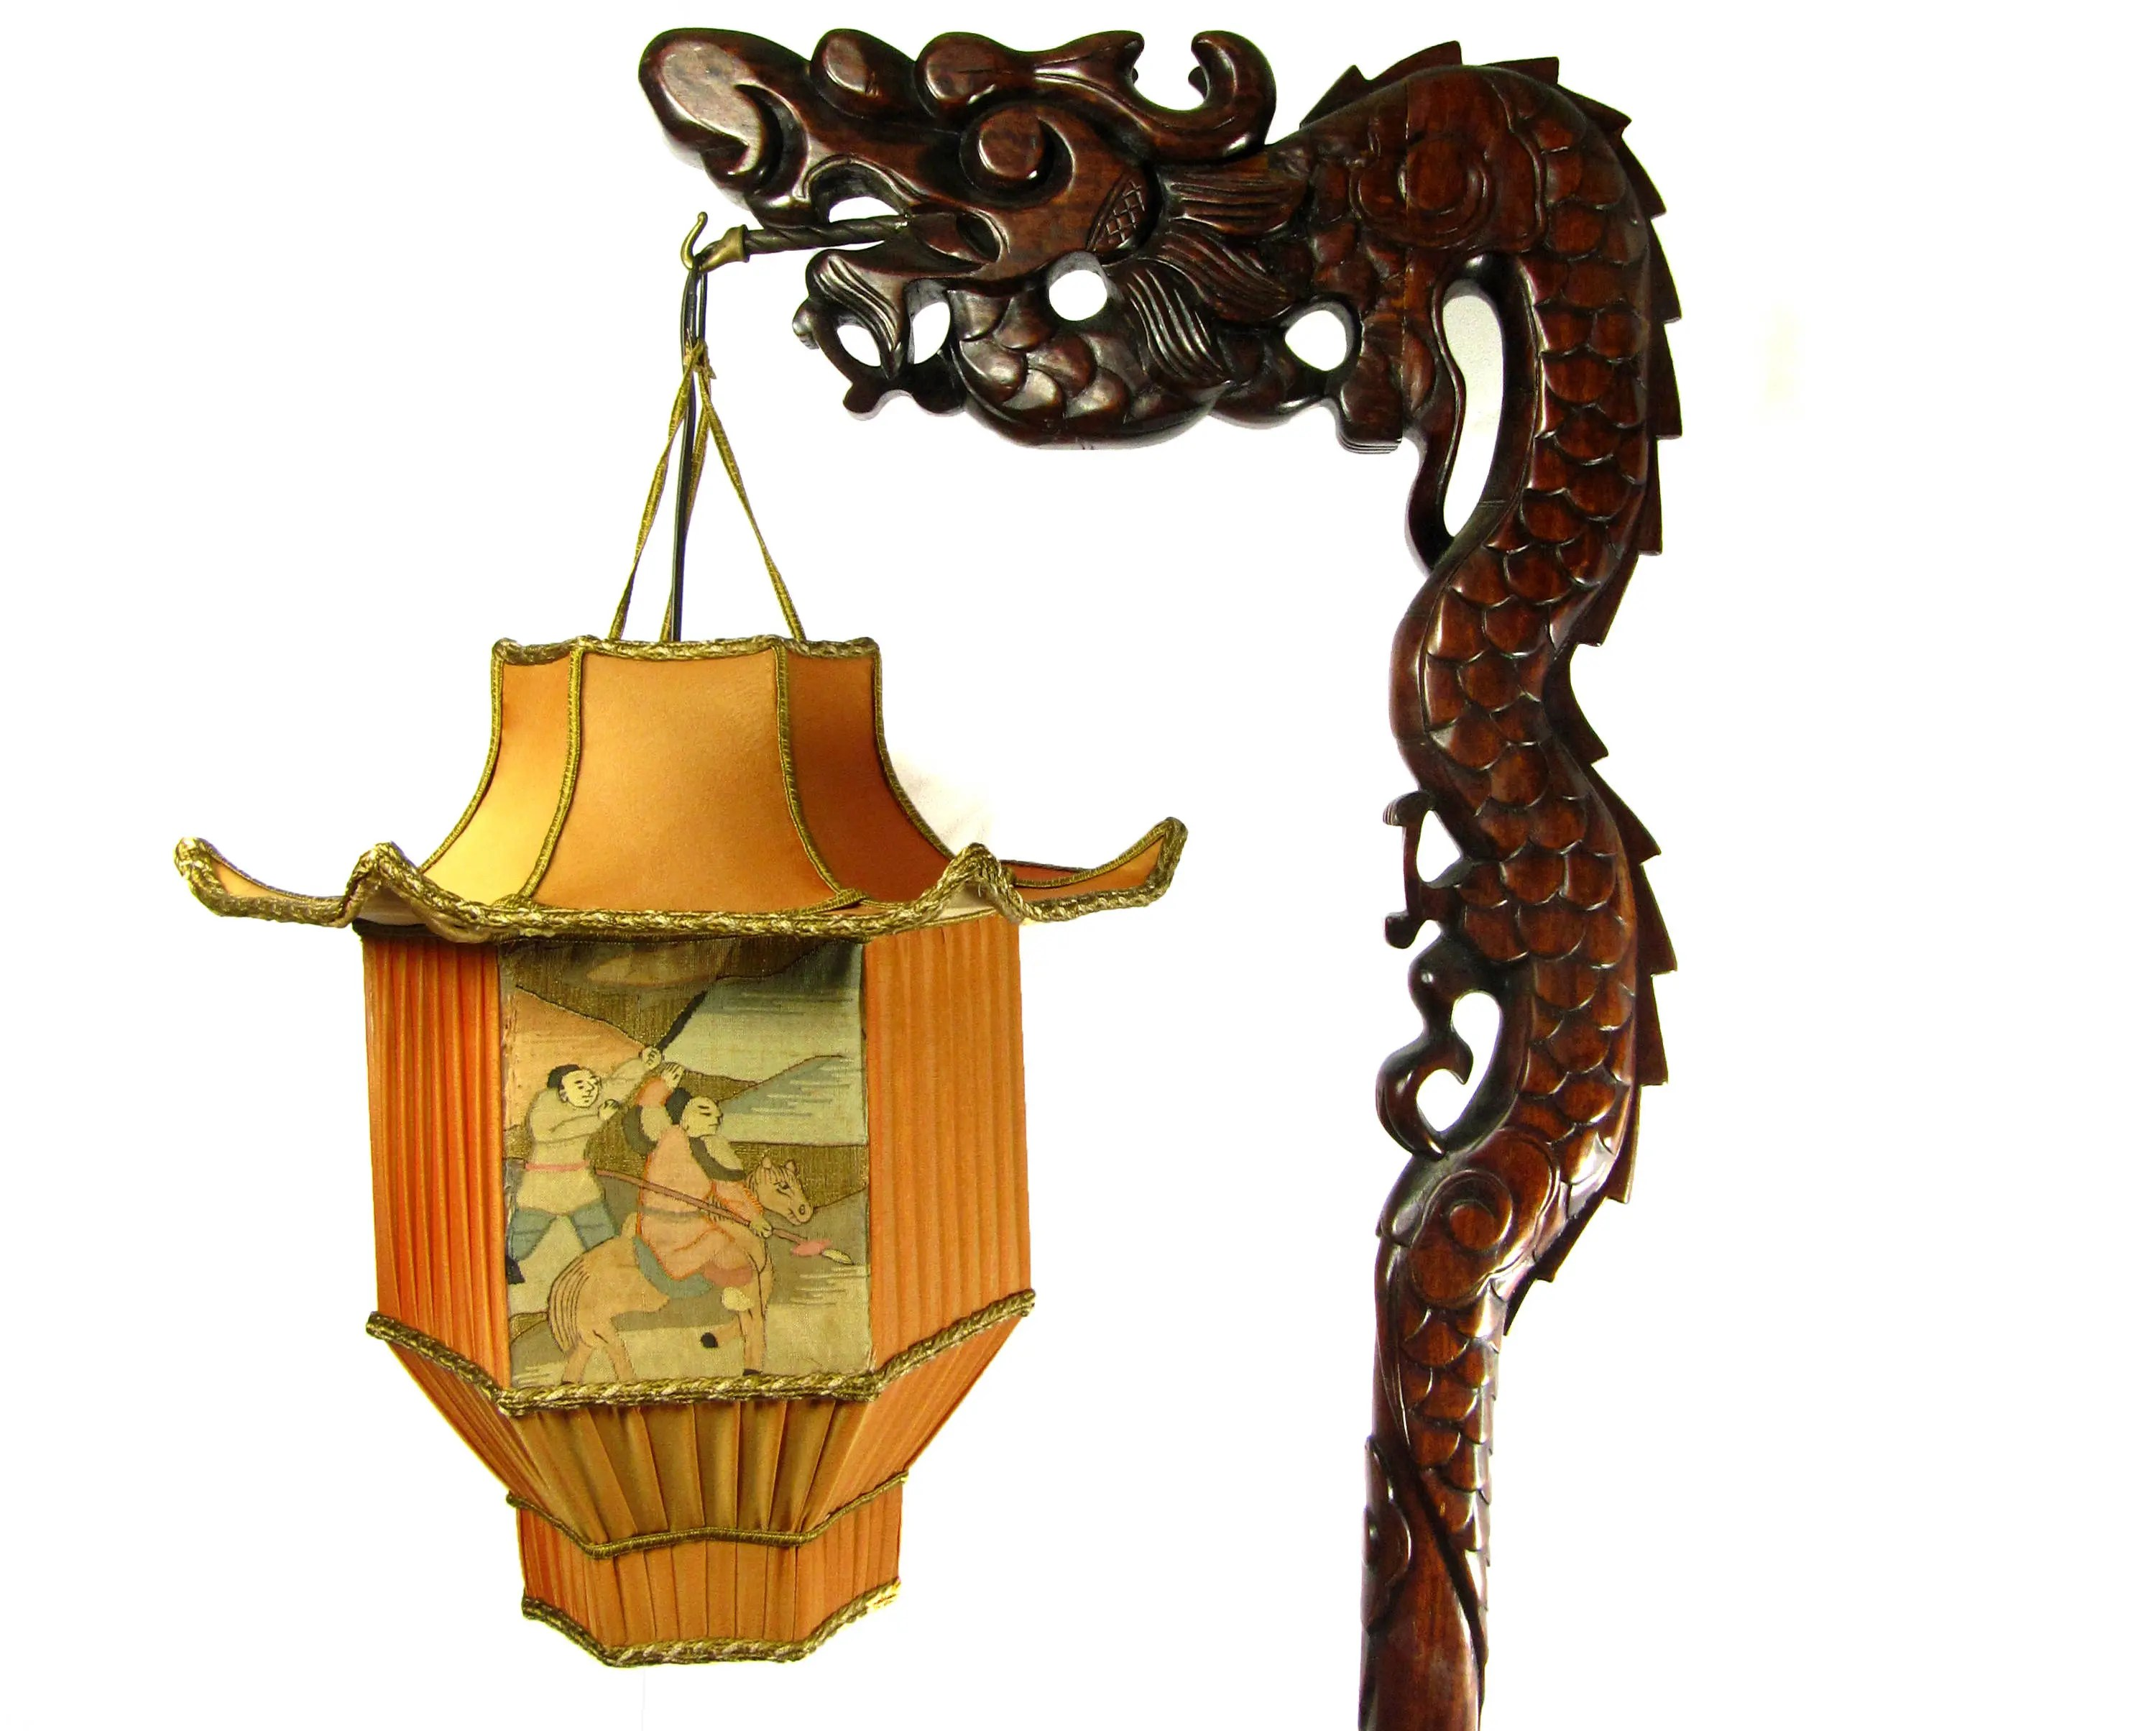 Dragon Lamps For Sale Chinese Dragon Lamp Wood Floor Carved With Custom Pagoda Shade 1920s Antique